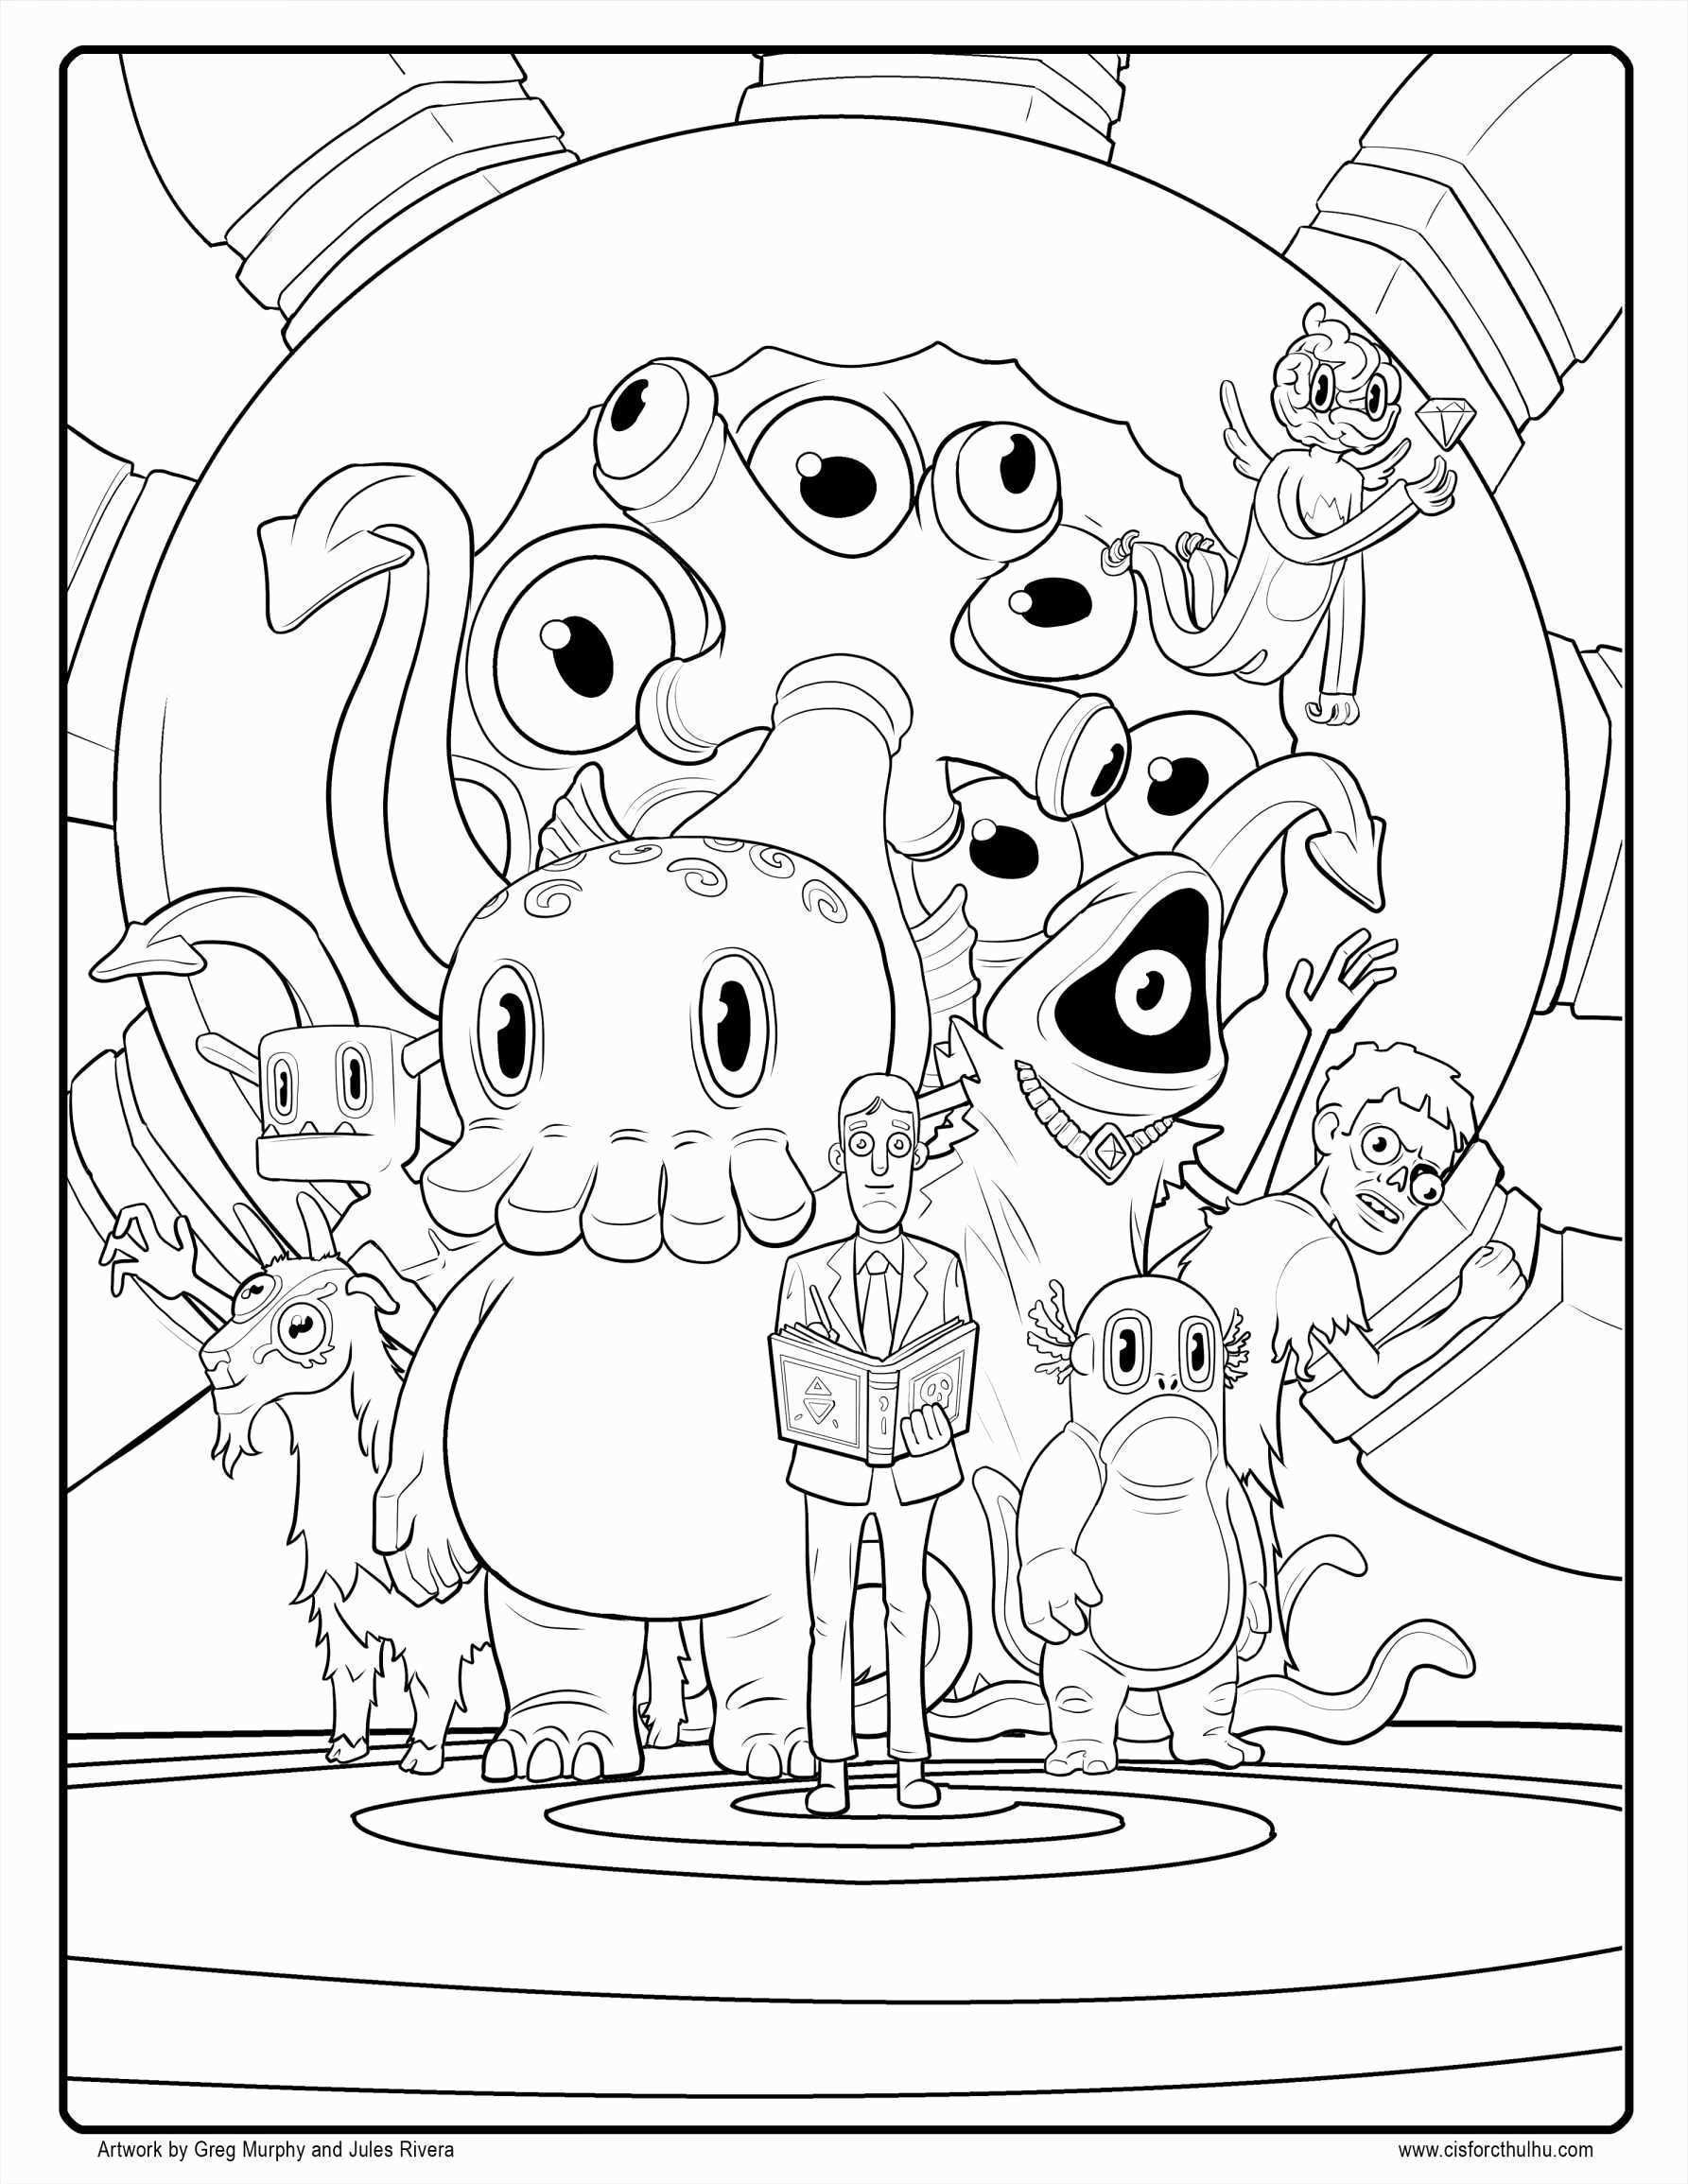 Printable Christmas Coloring Pages line